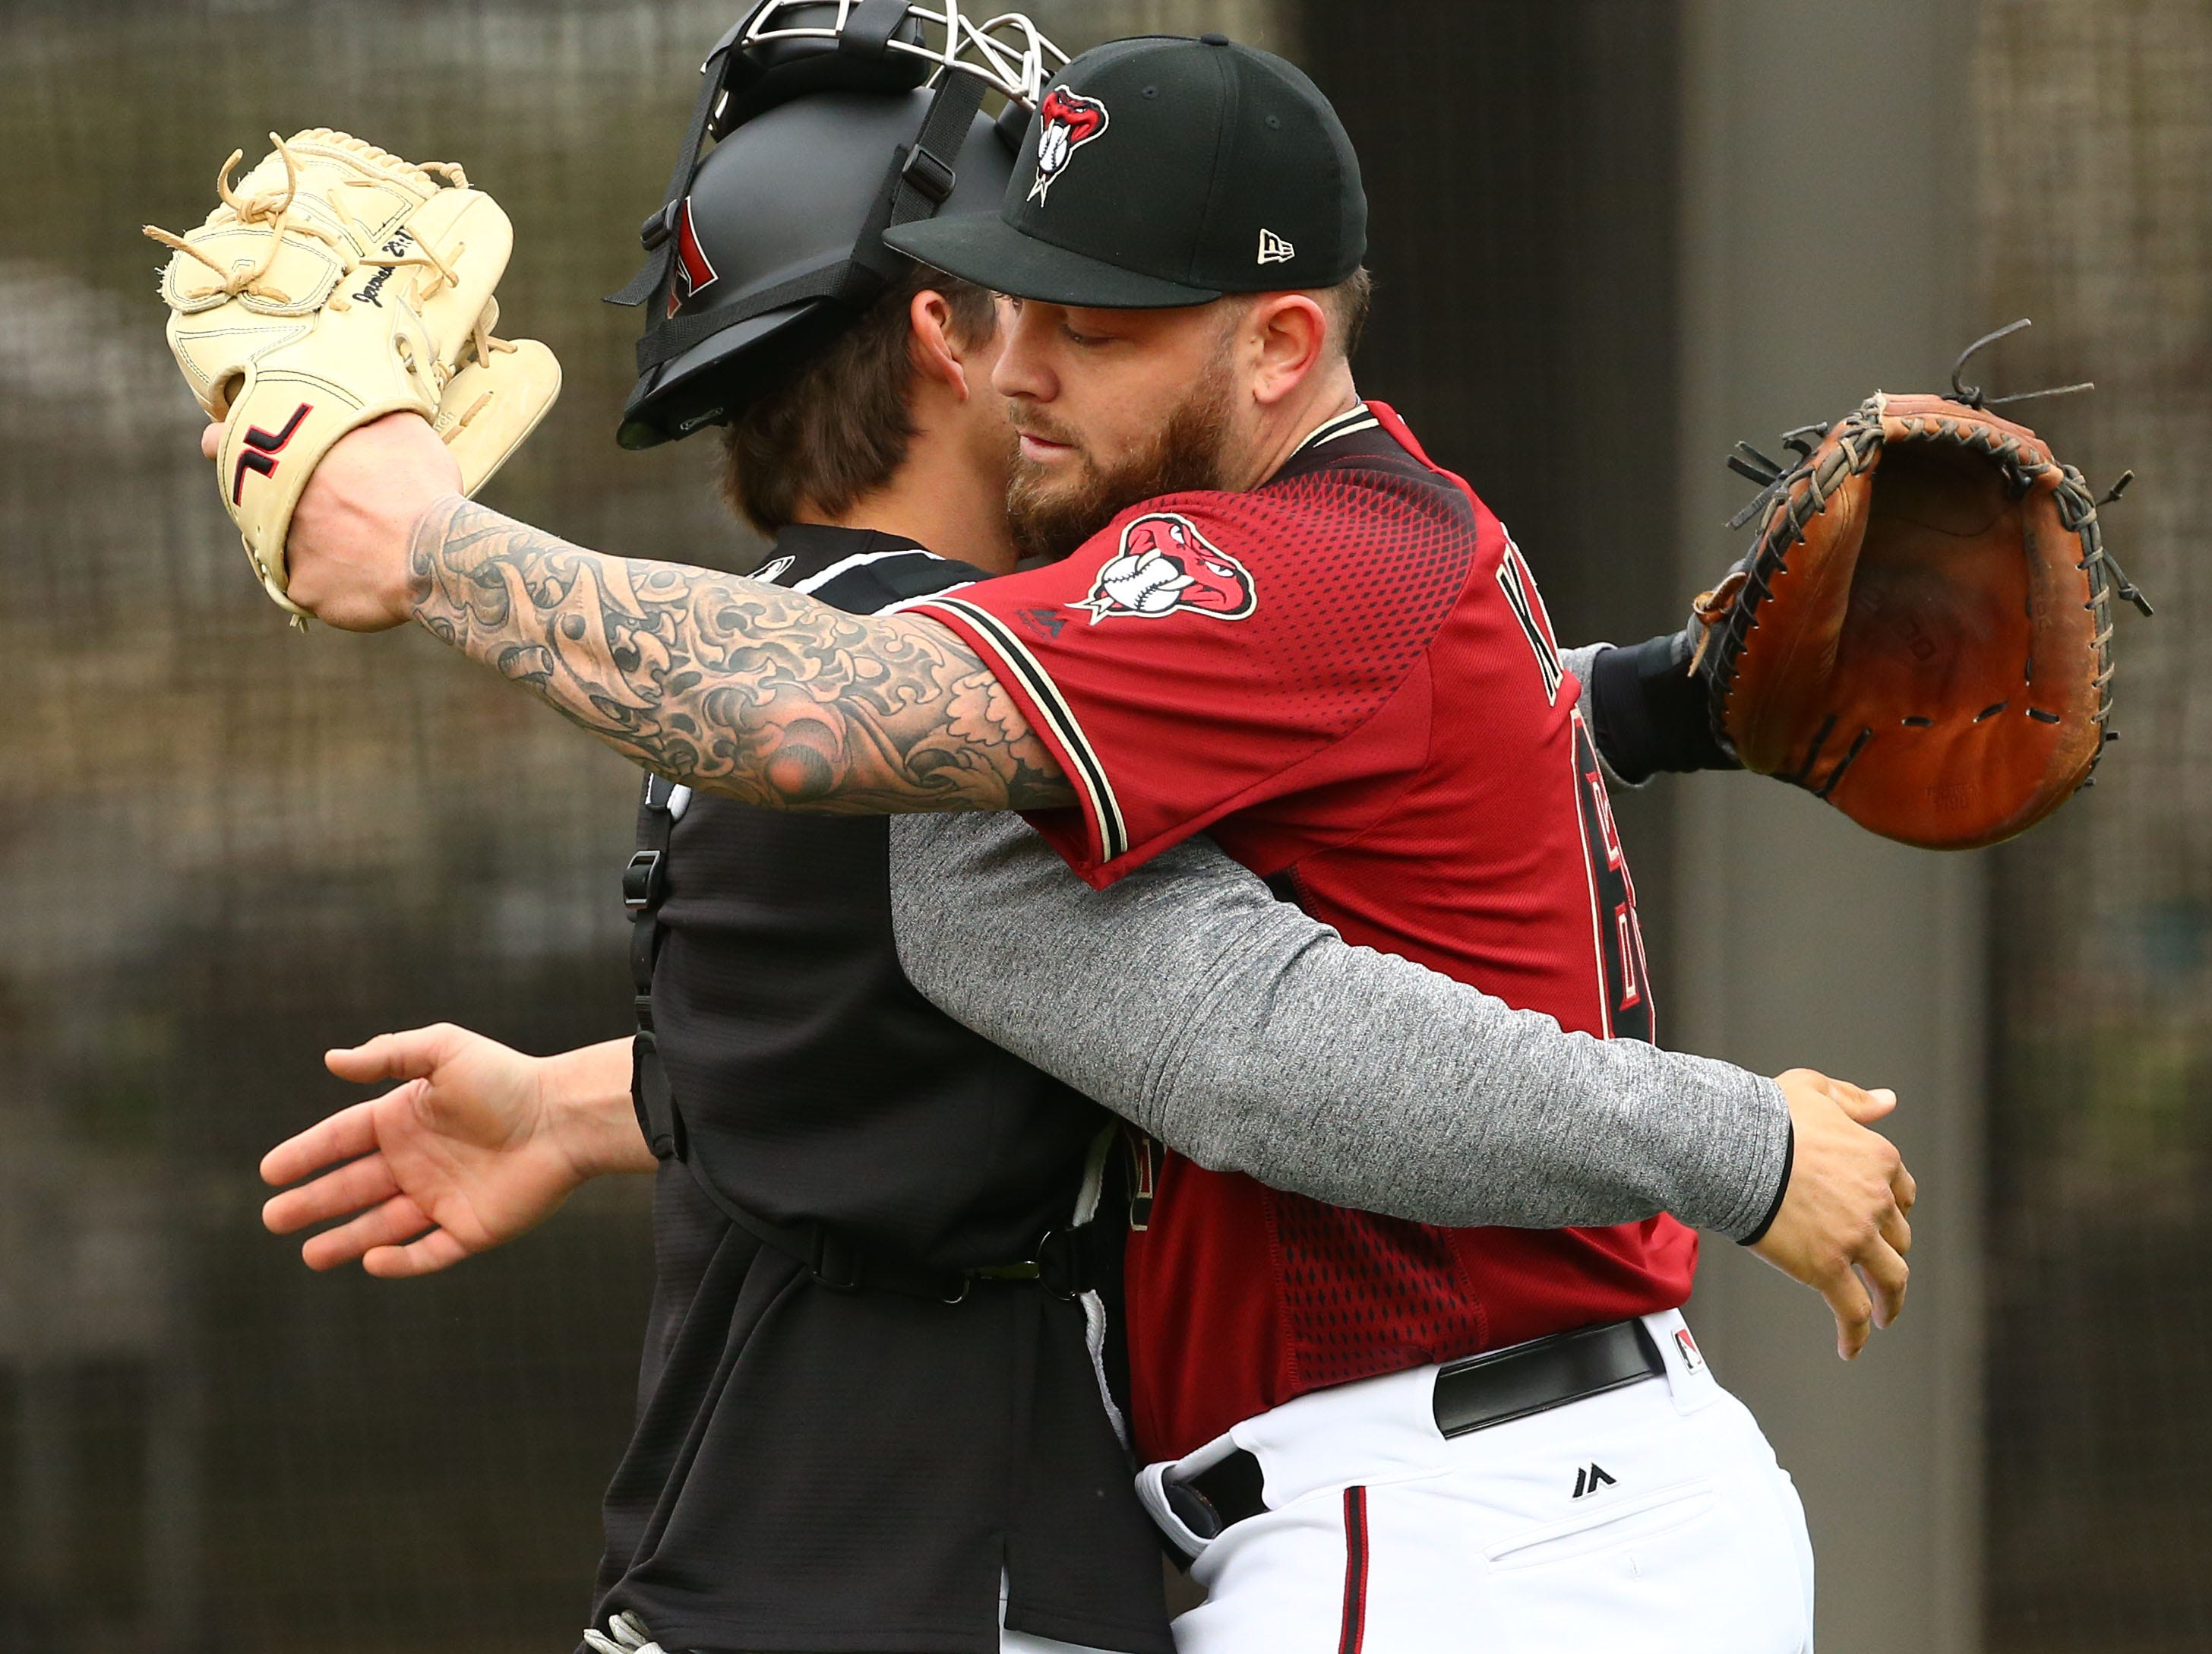 Arizona Diamondbacks pitcher Joey Krehbiel hugs his catcher after his bullpen session during the first day of spring training workouts on Feb. 13 at Salt River Fields in Scottsdale.